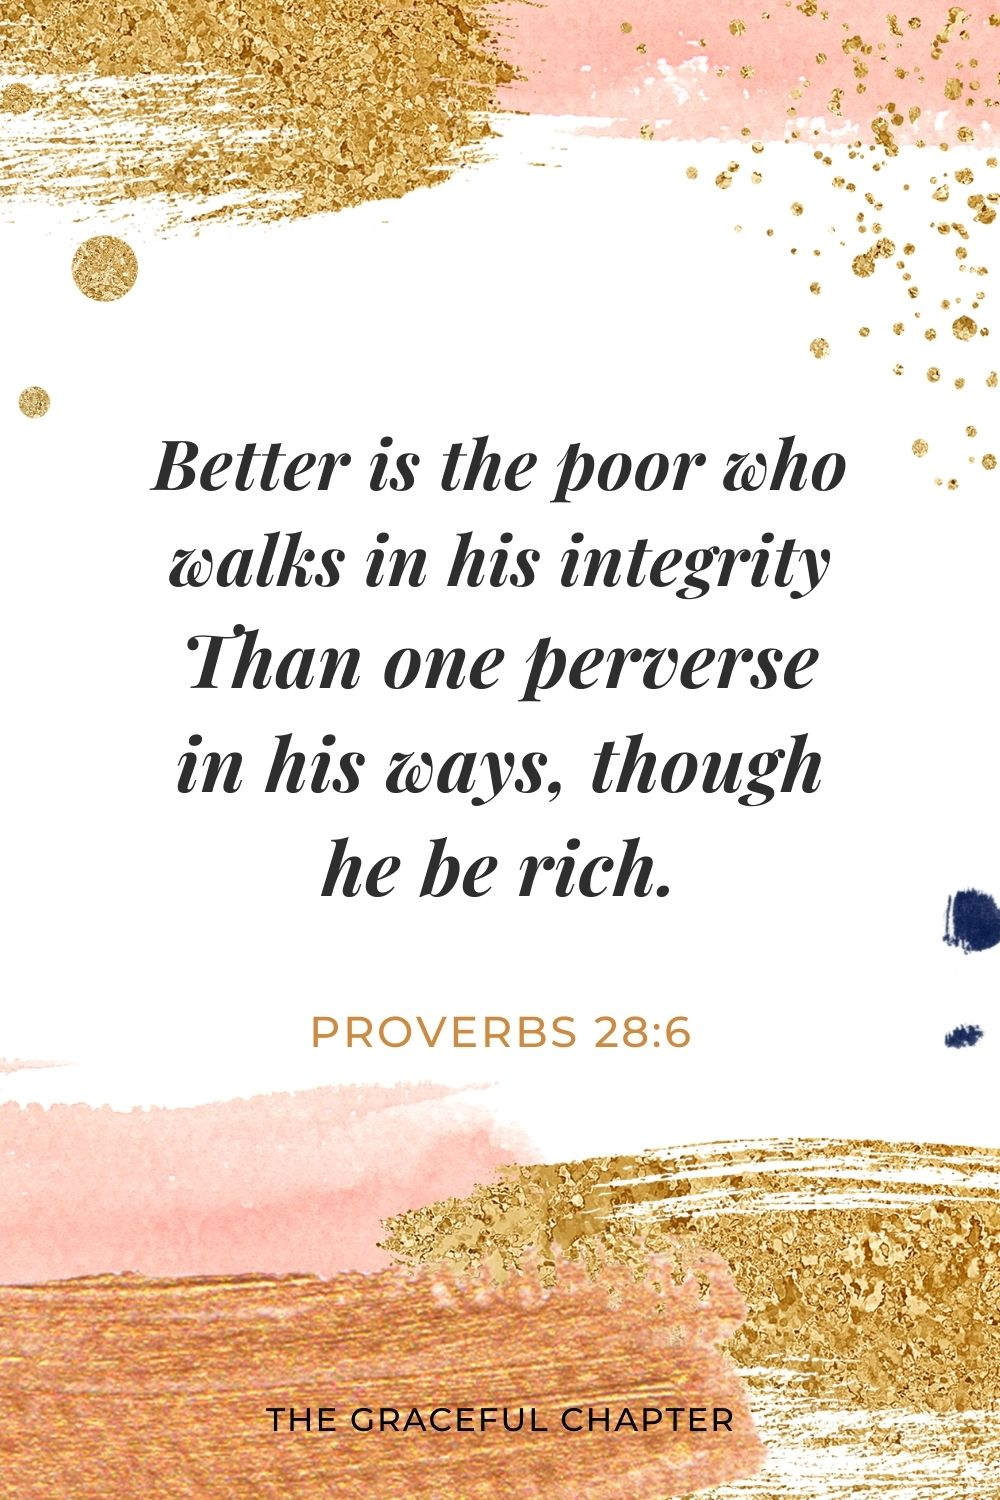 Better is the poor who walks in his integrity Than one perverse in his ways, though he be rich. Proverbs 28:6